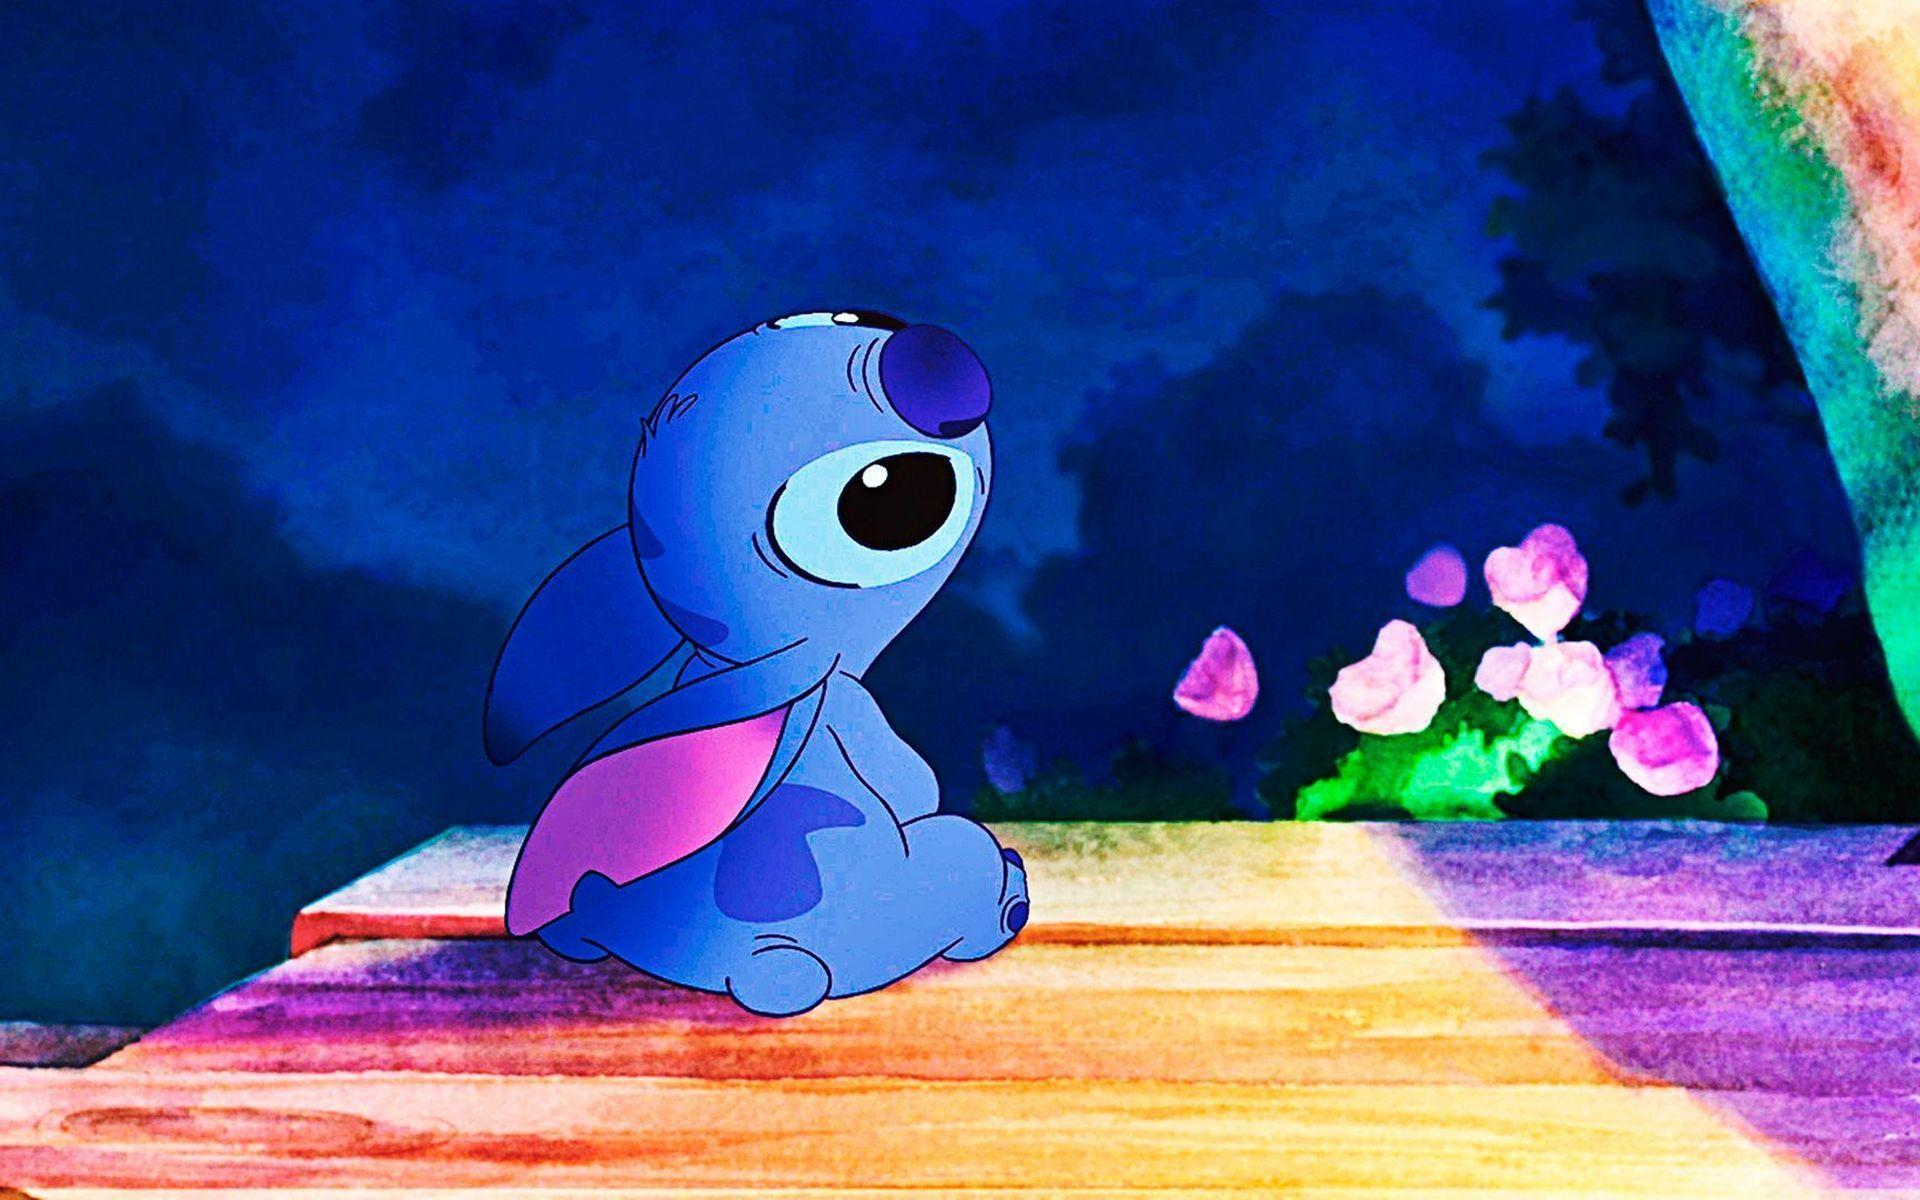 Stitch Wallpapers And Desktop Backgrounds Download   Stitch 1920x1200